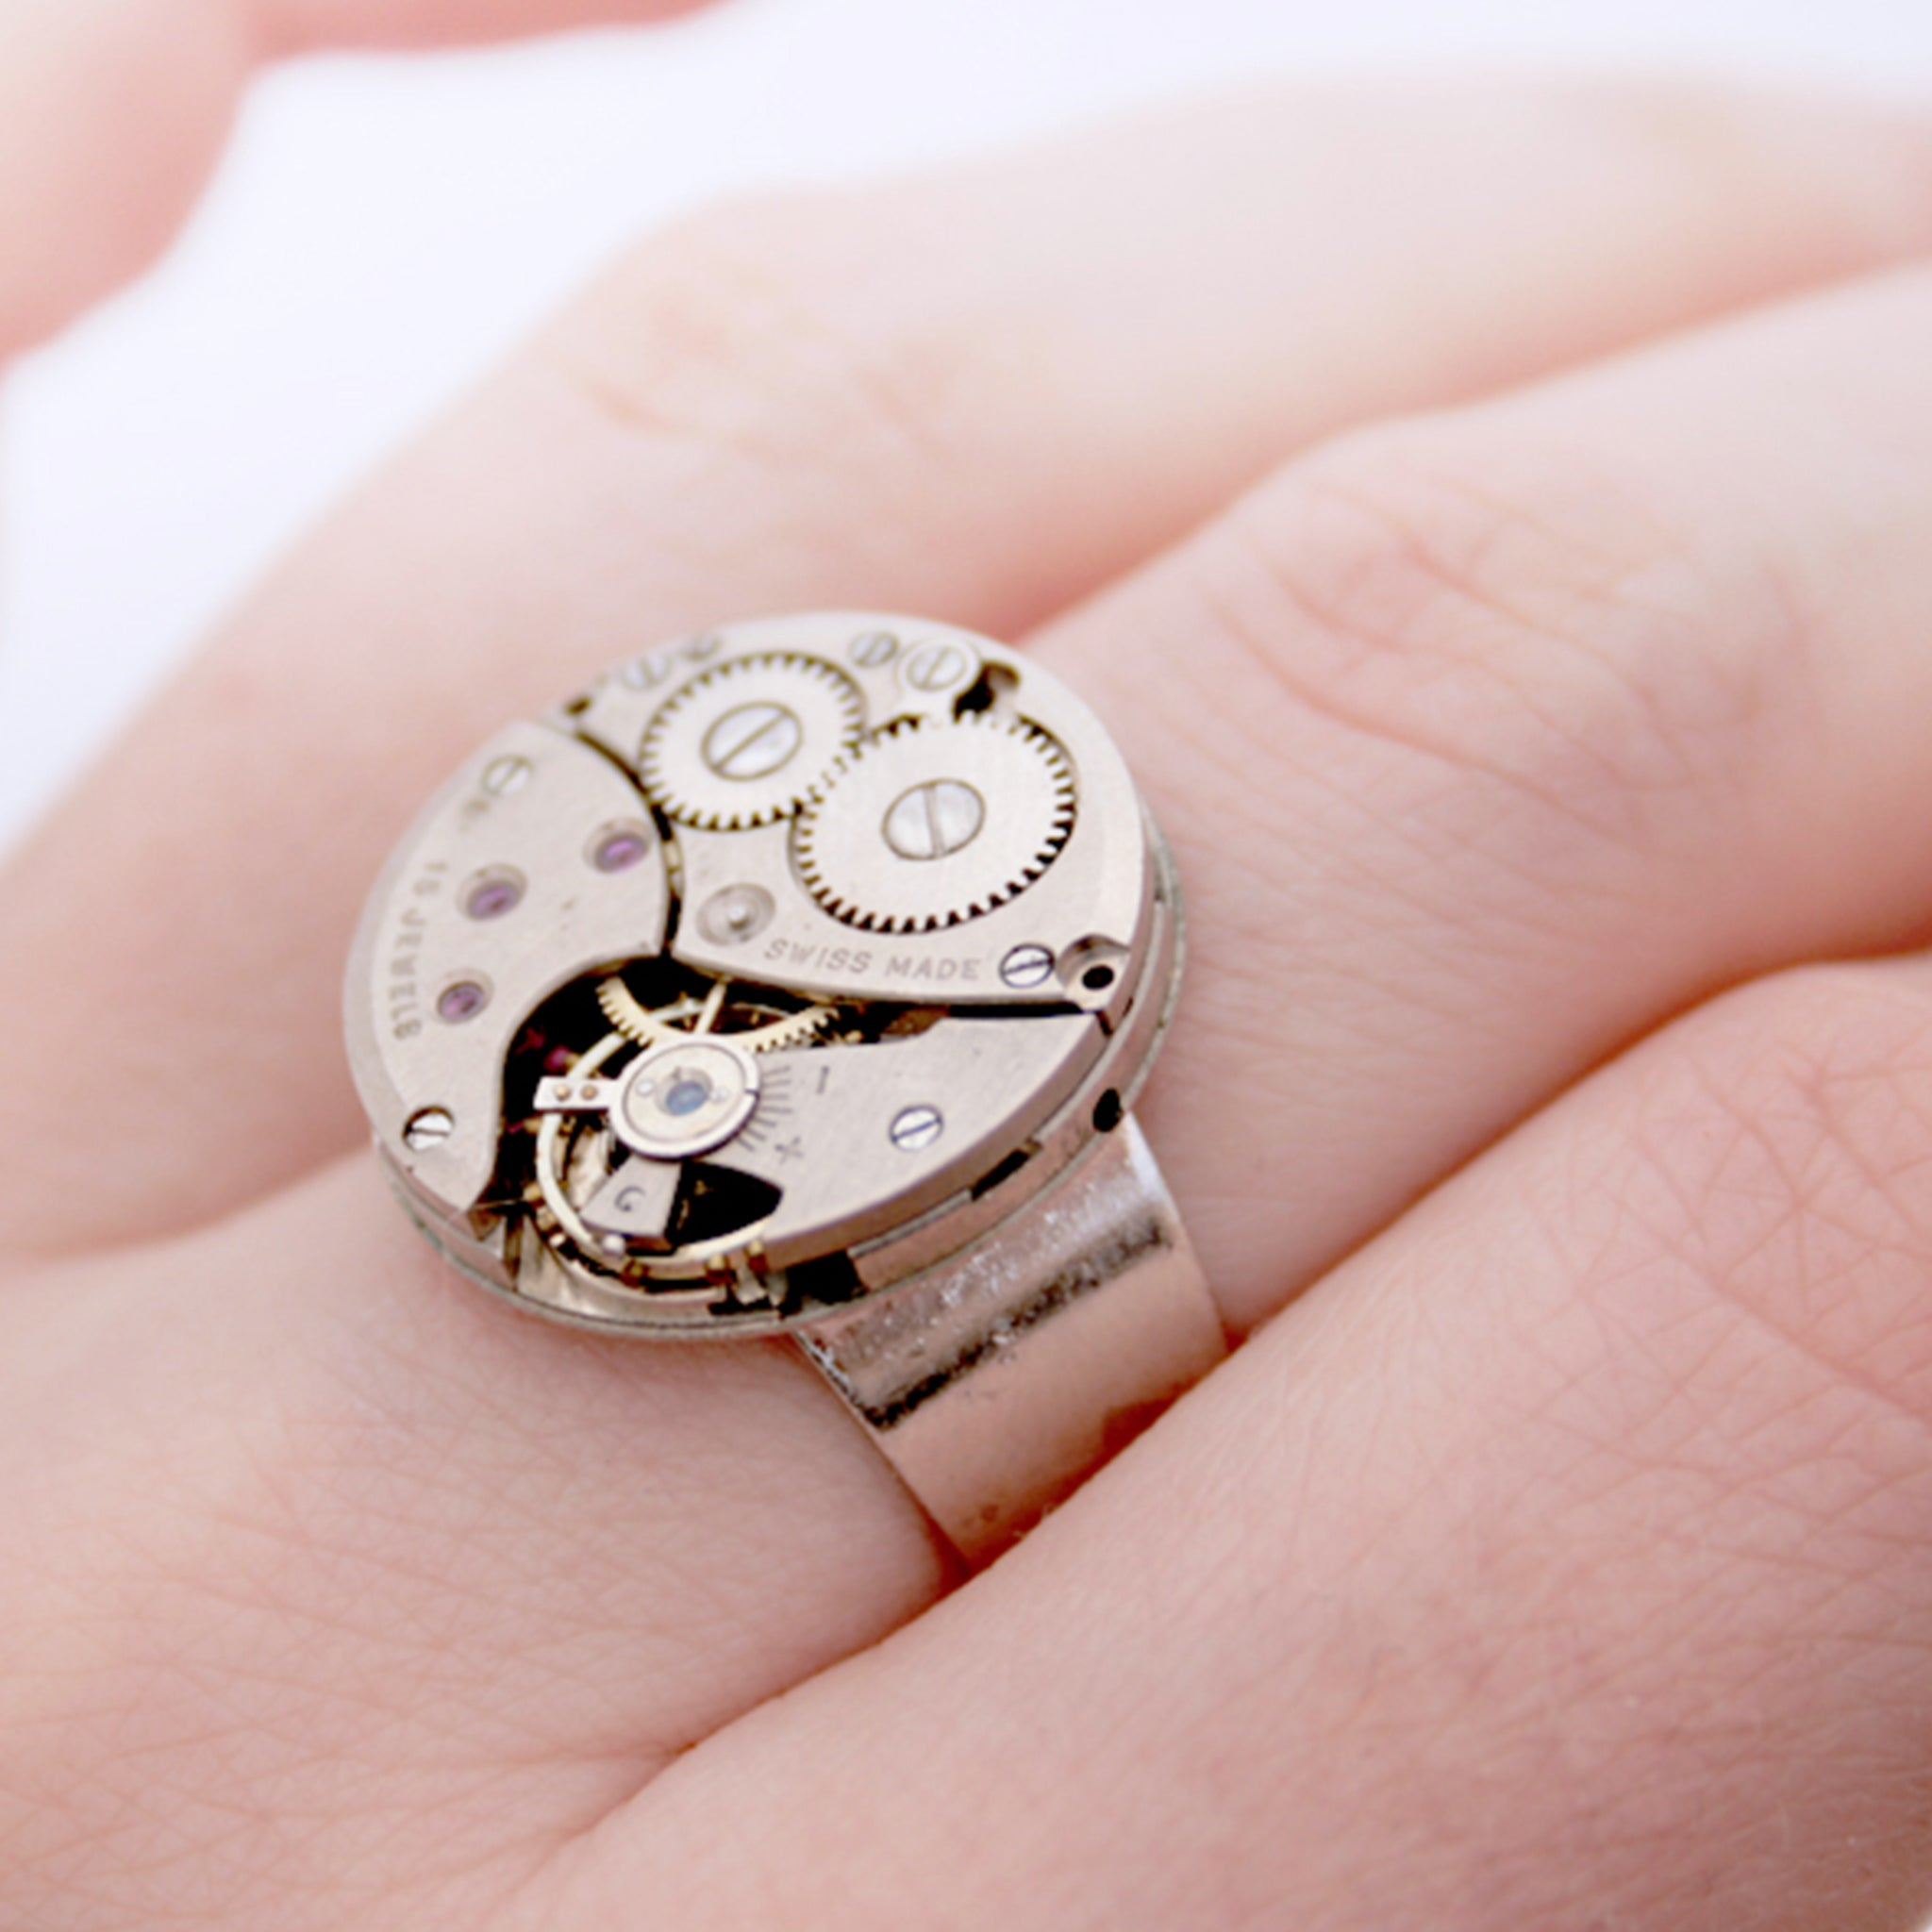 steampunk ring made of a real Swiss watch mechanism on hand